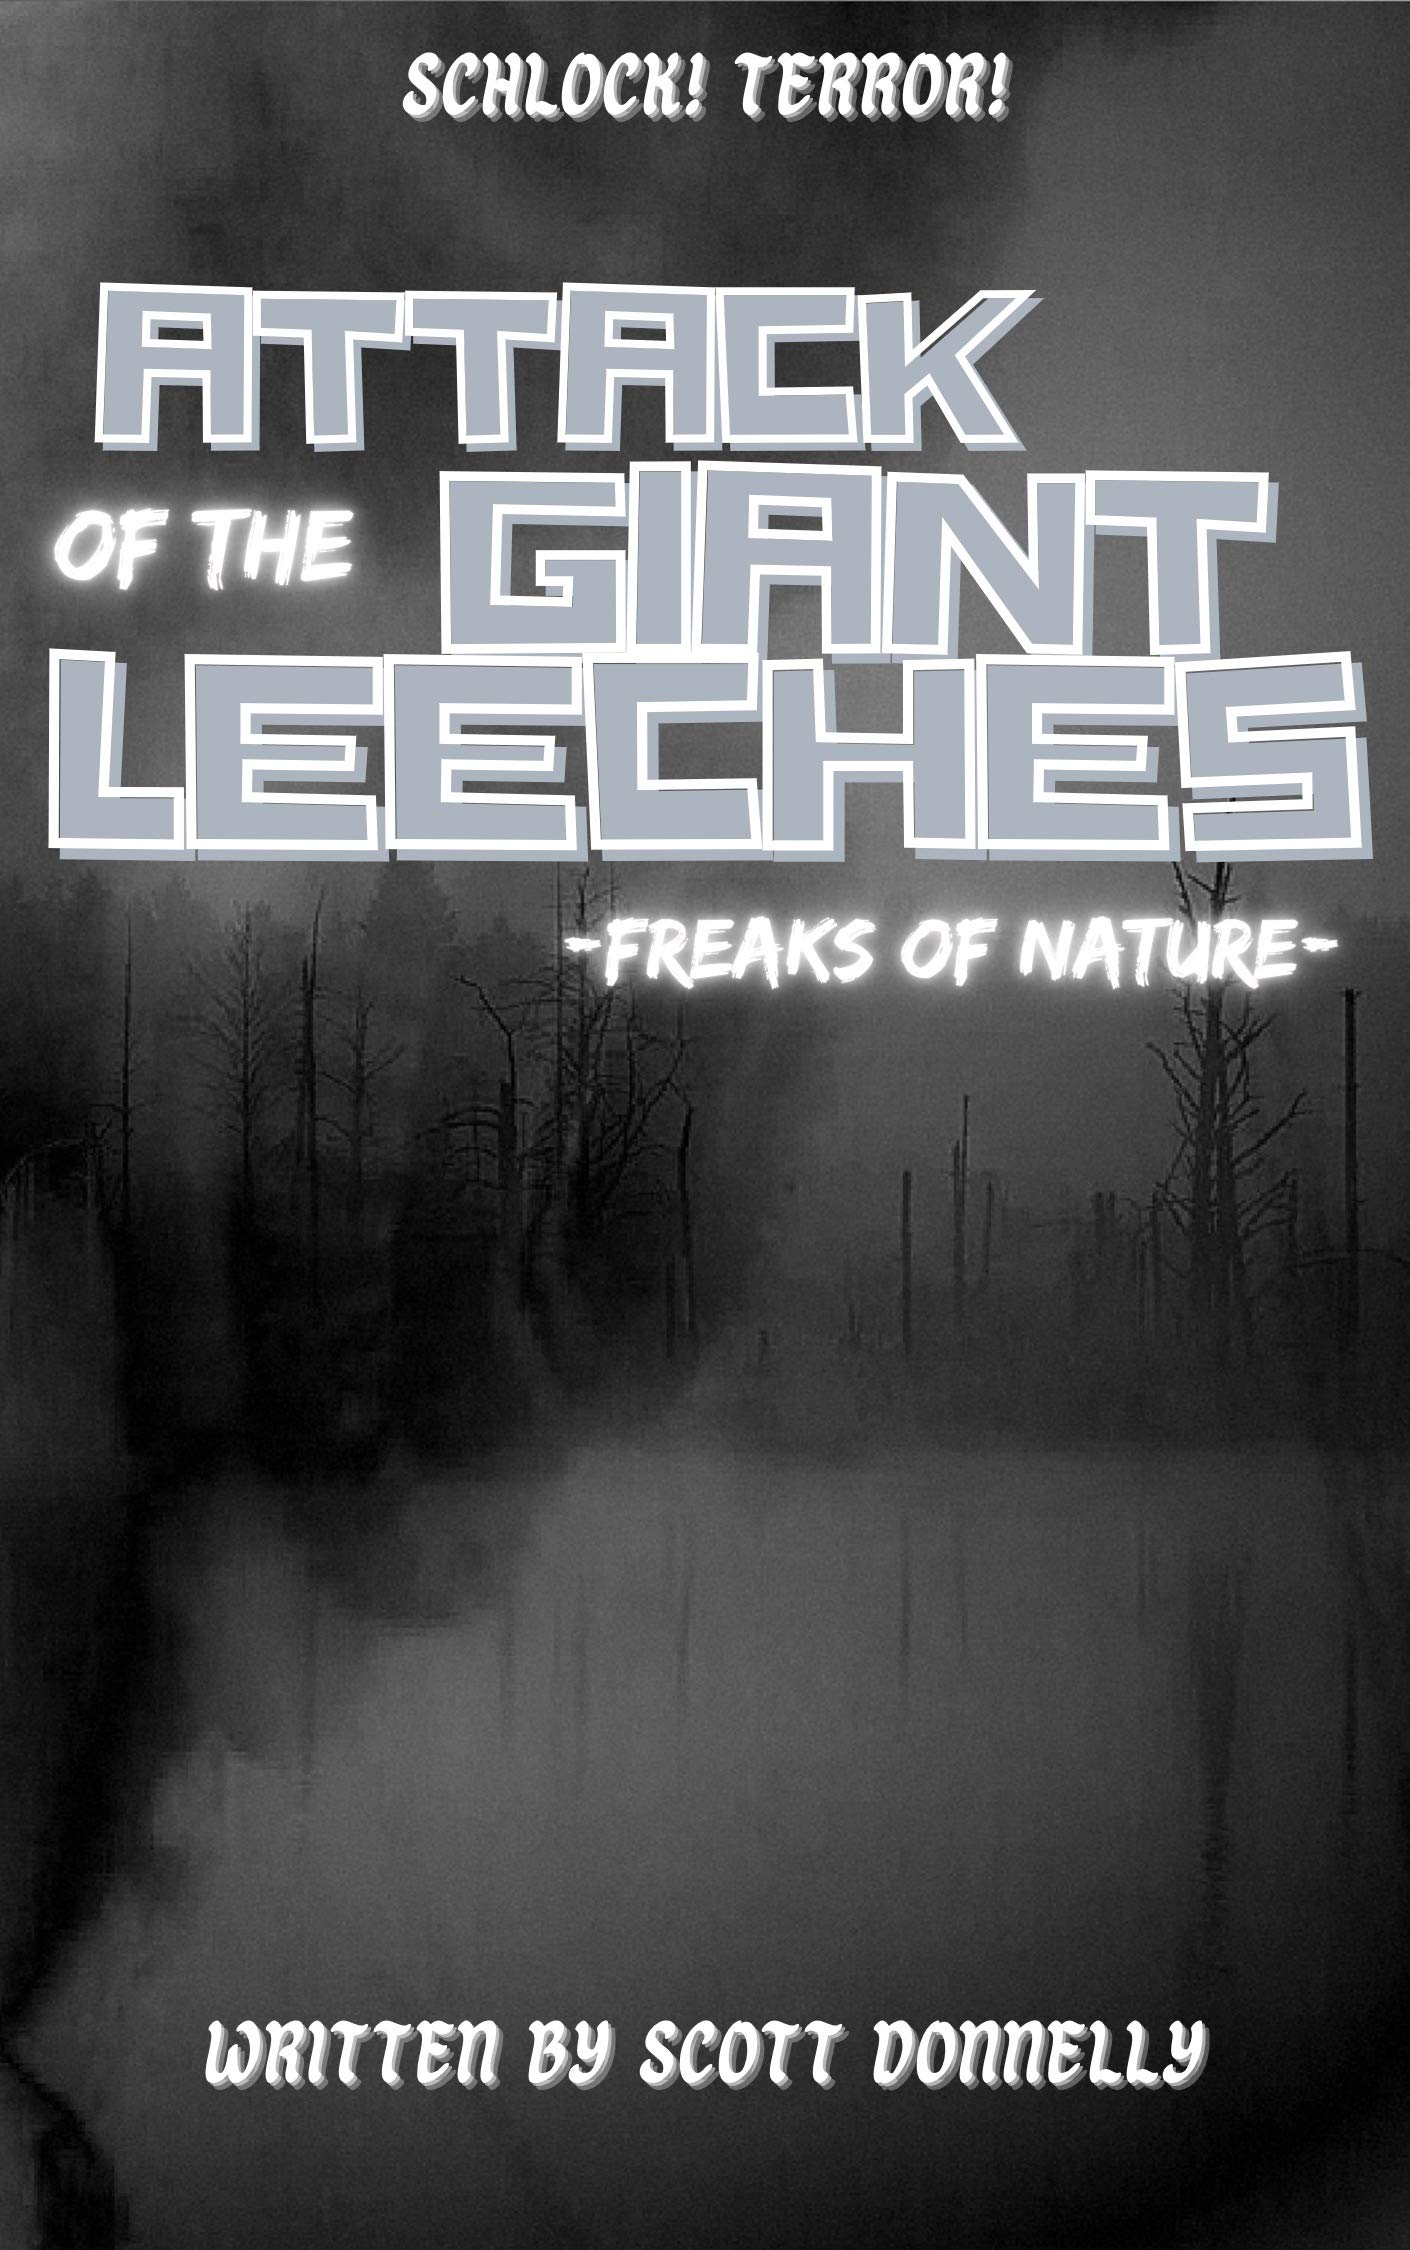 Attack of the Giant Leeches: Freaks of Nature (Schlock! Terror! Book 1)